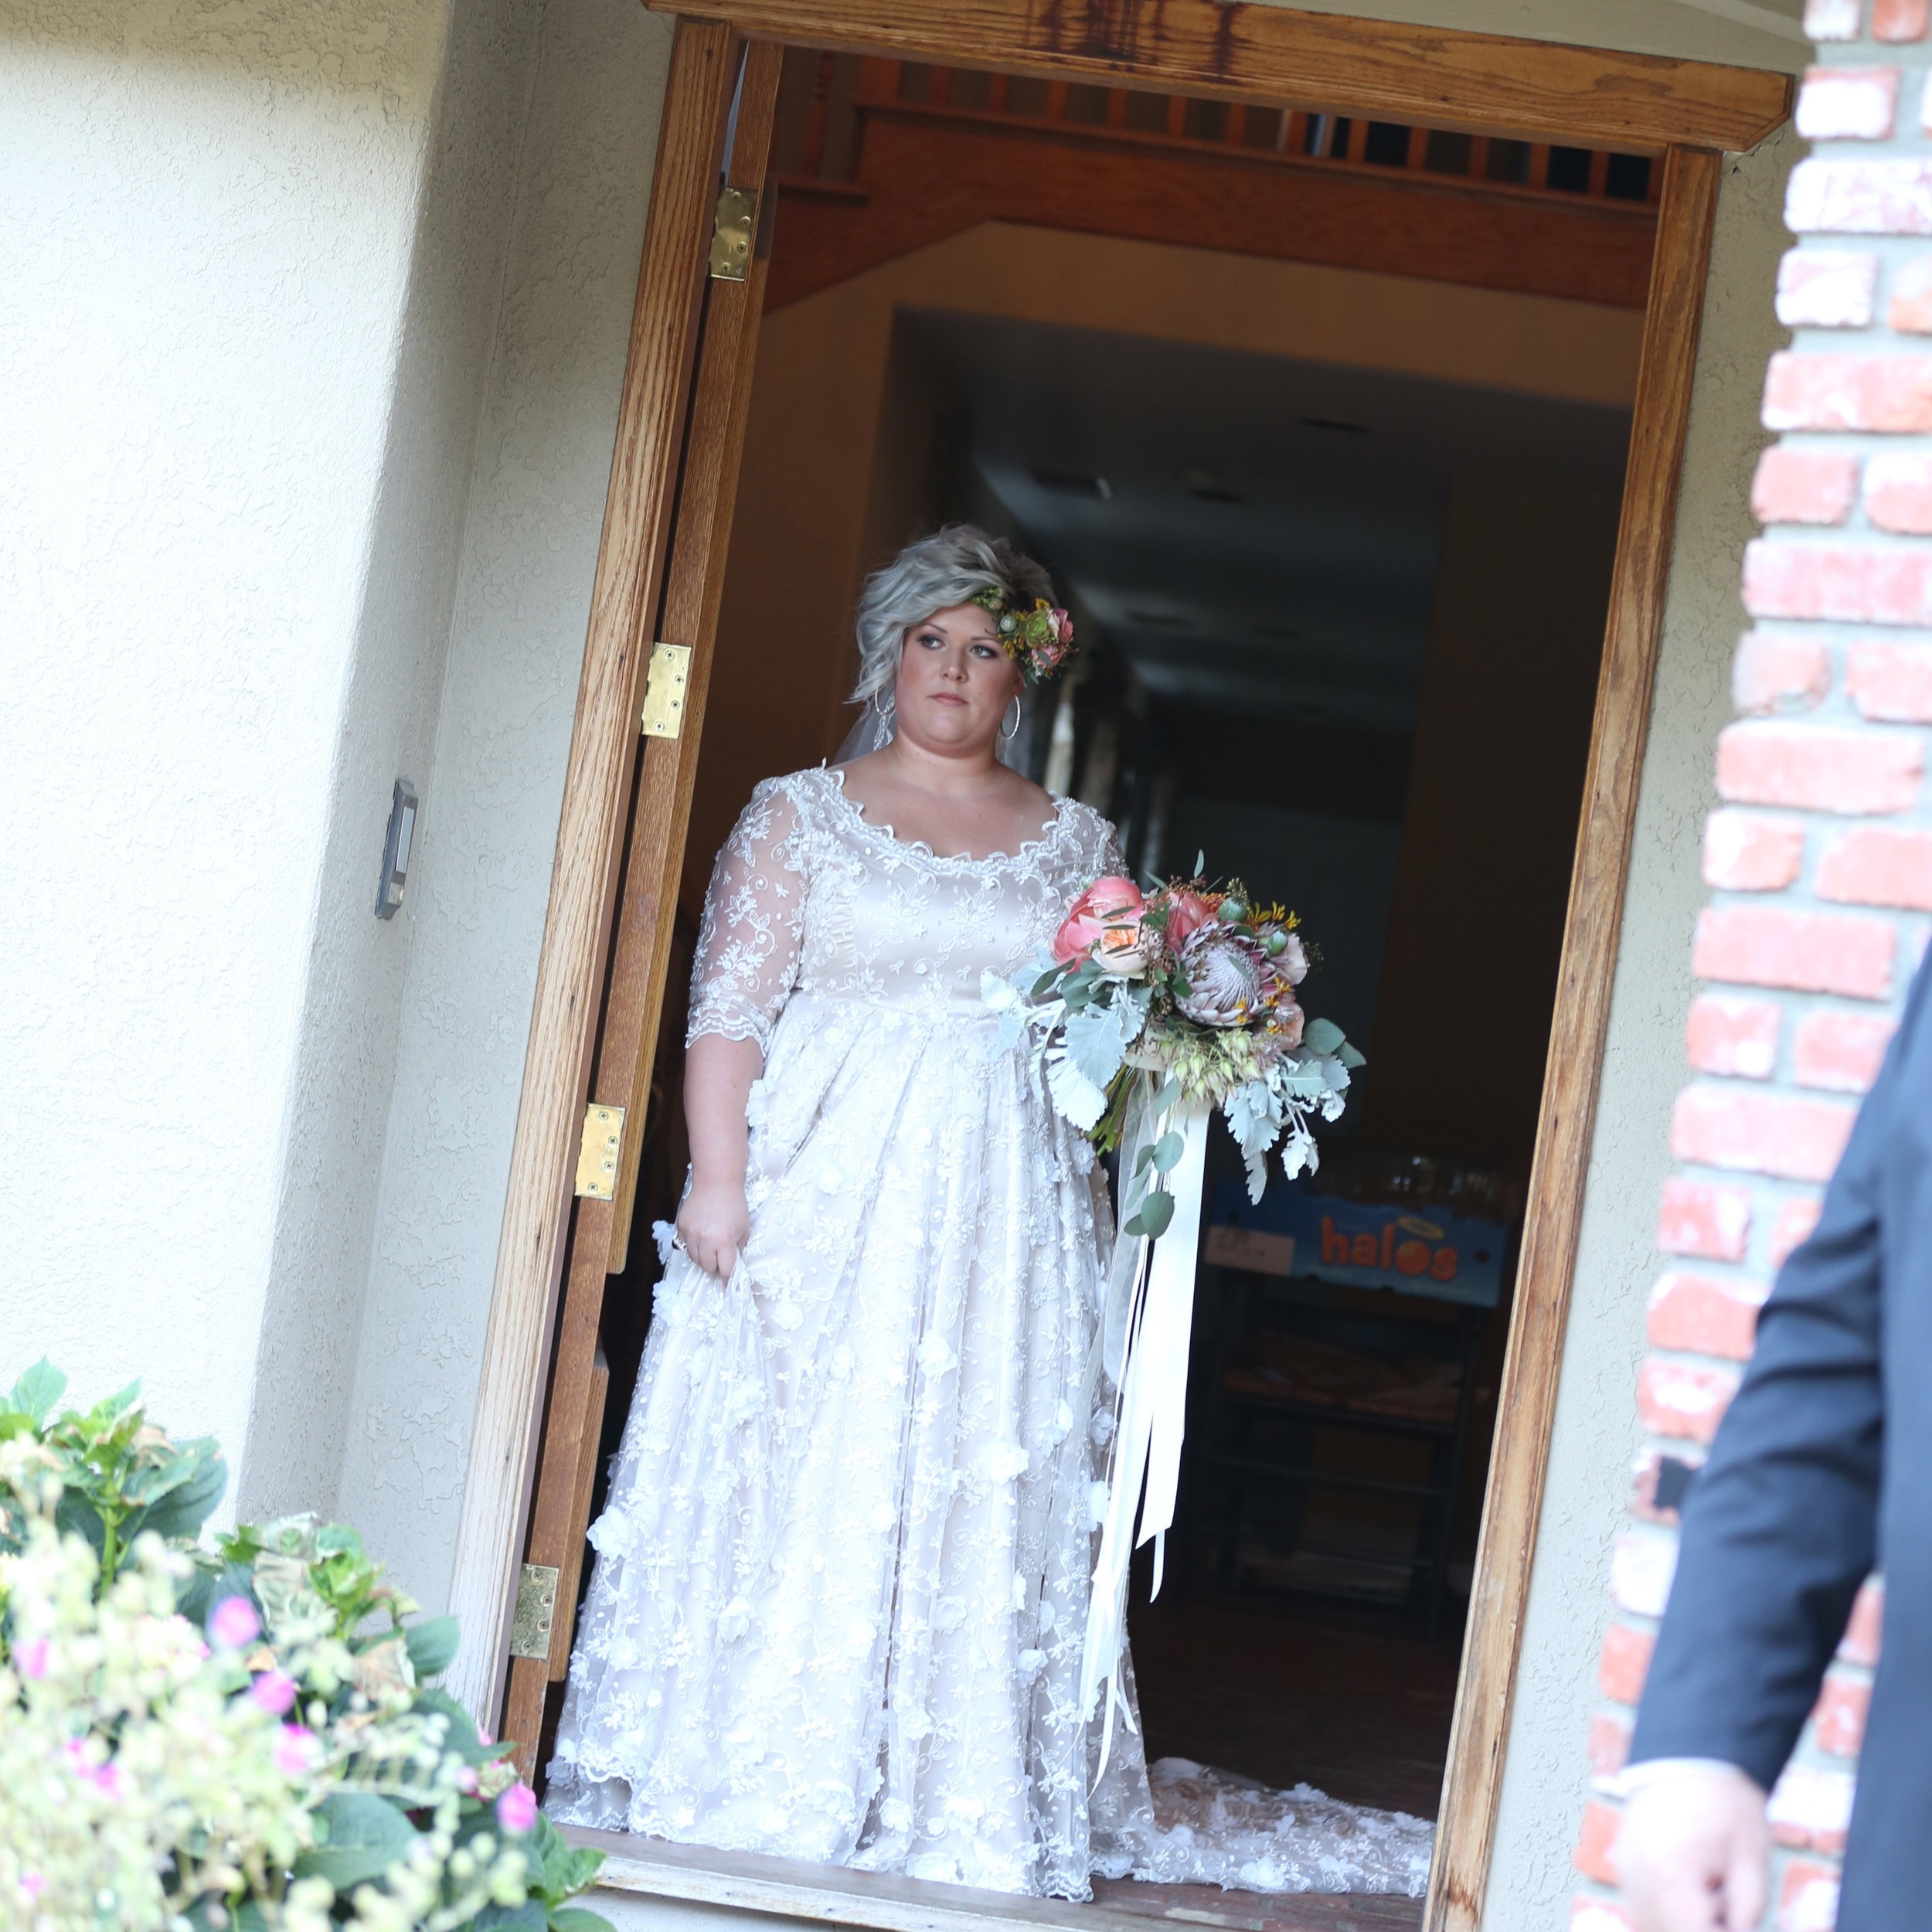 The bride waiting in the doorway for her father to walk her down the aisle on her wedding day.